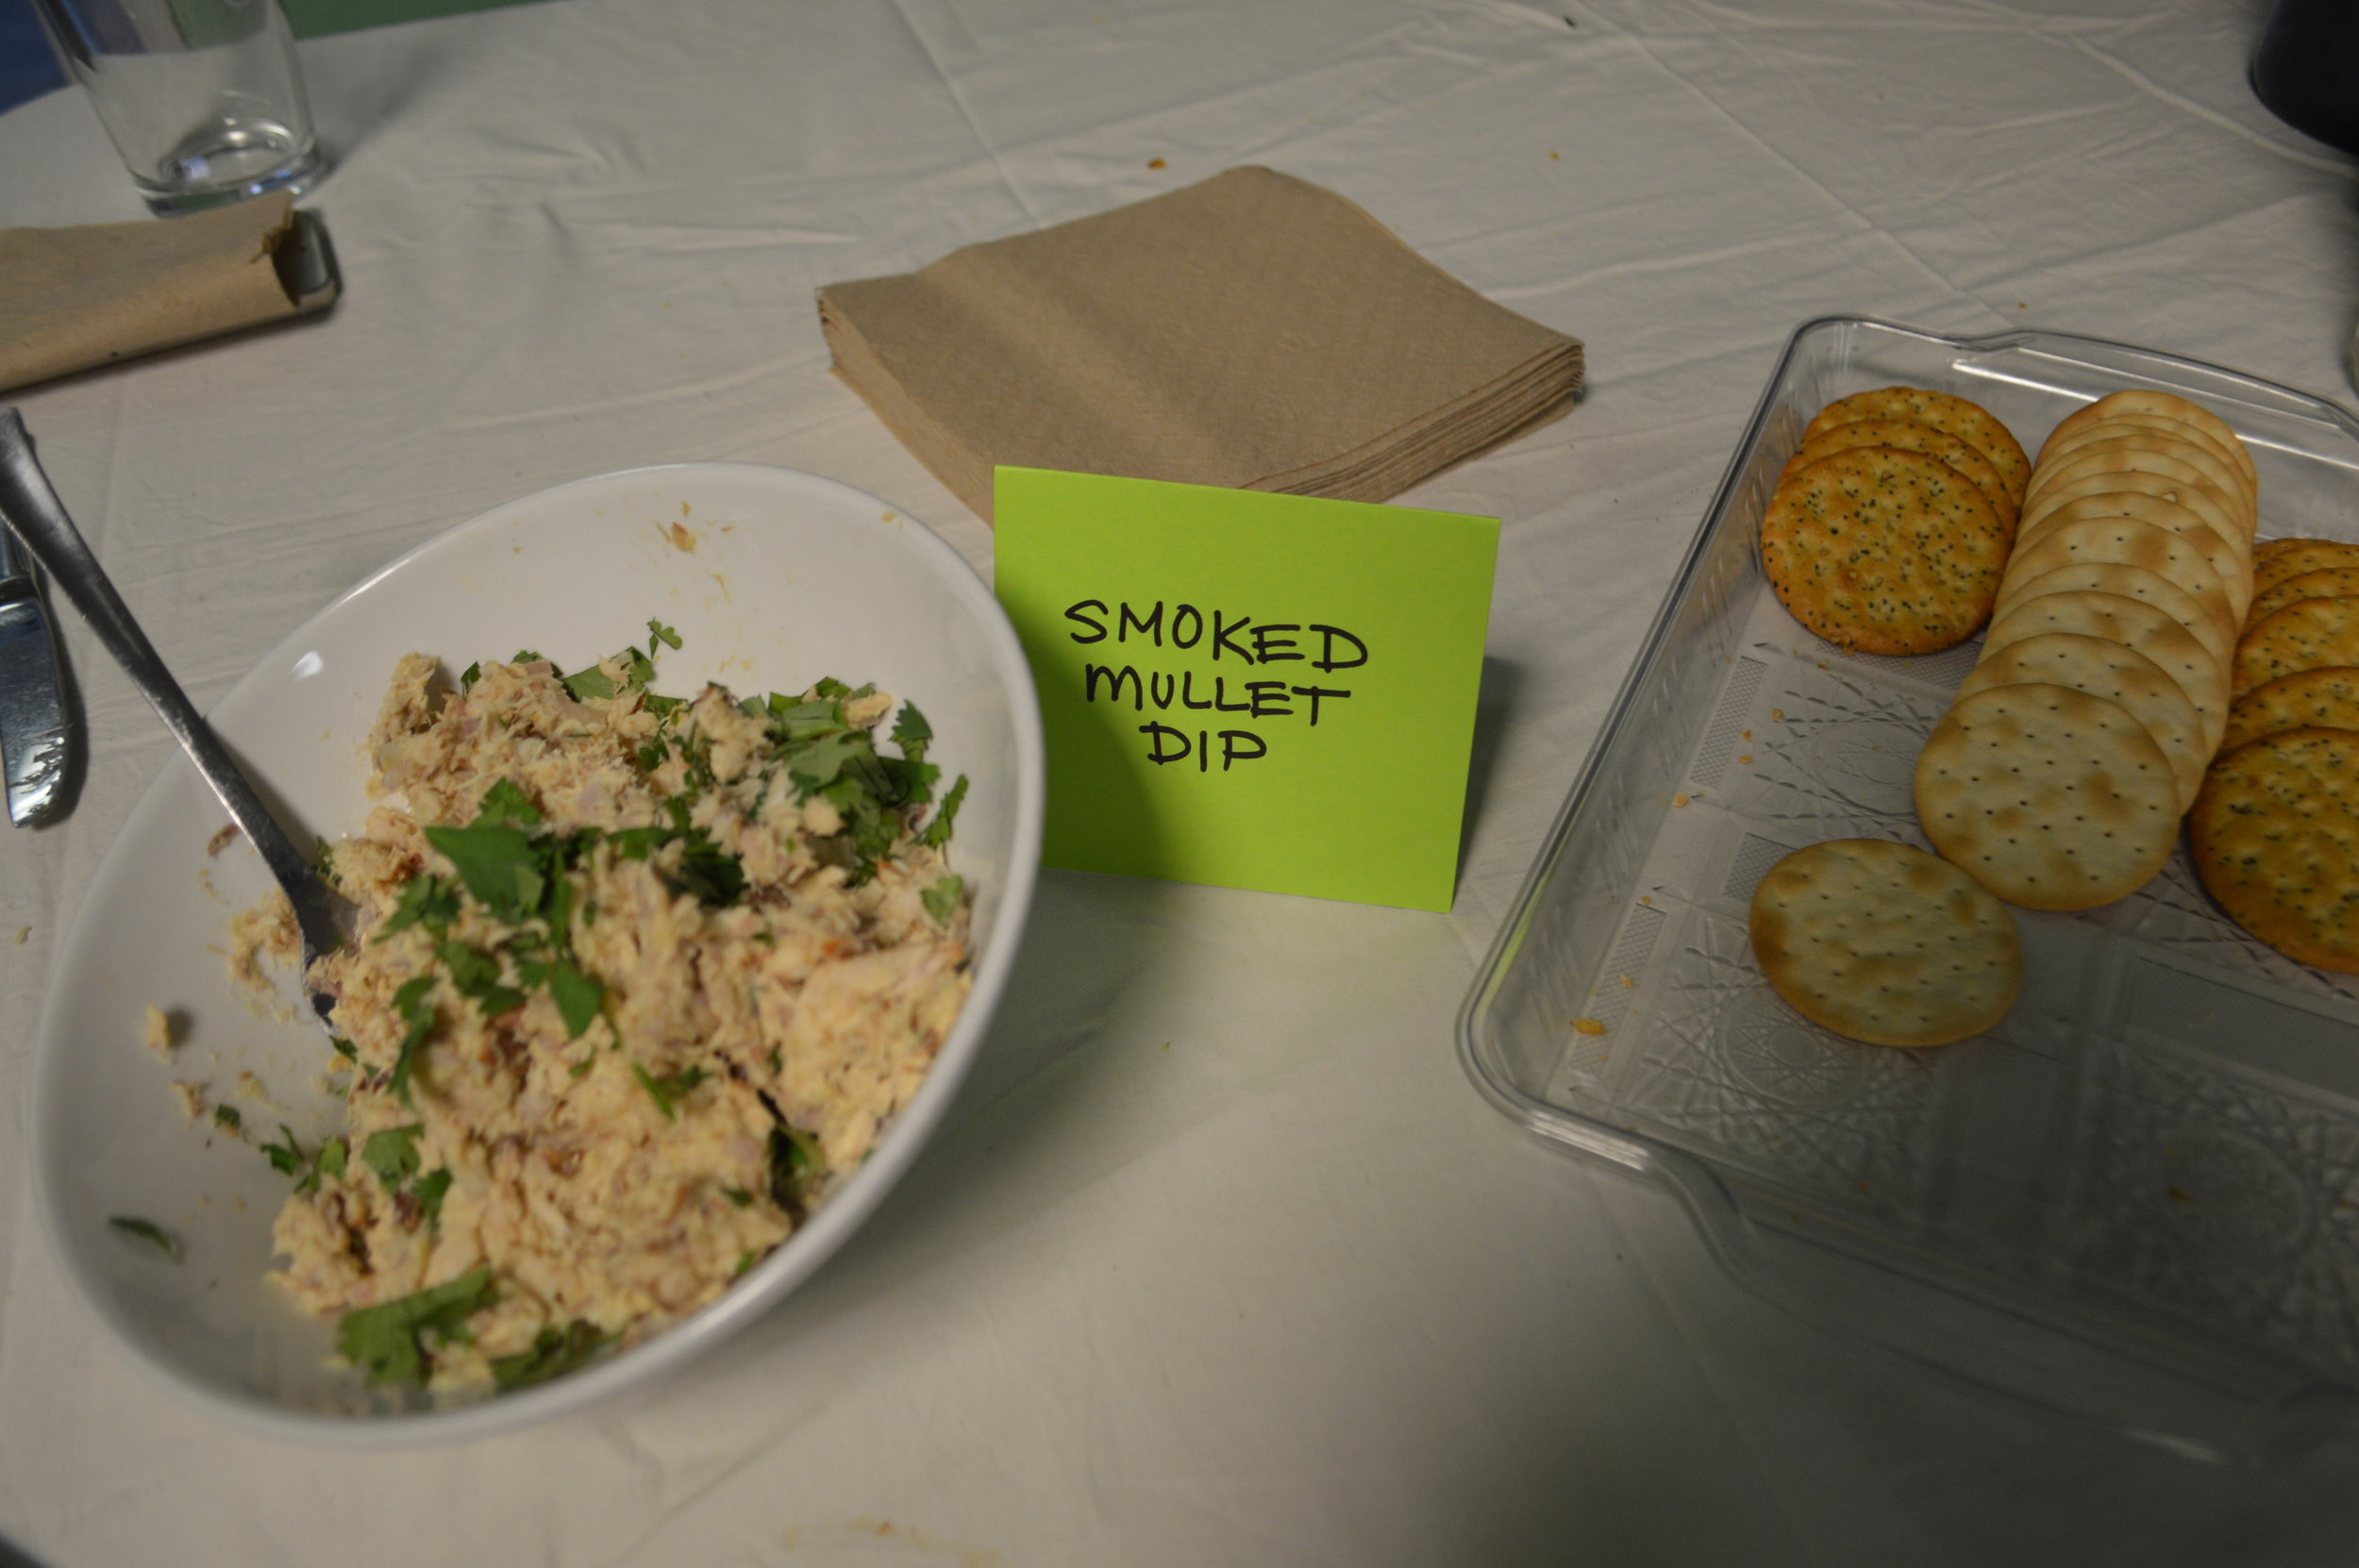 Smoked mullet dip served with crackers.